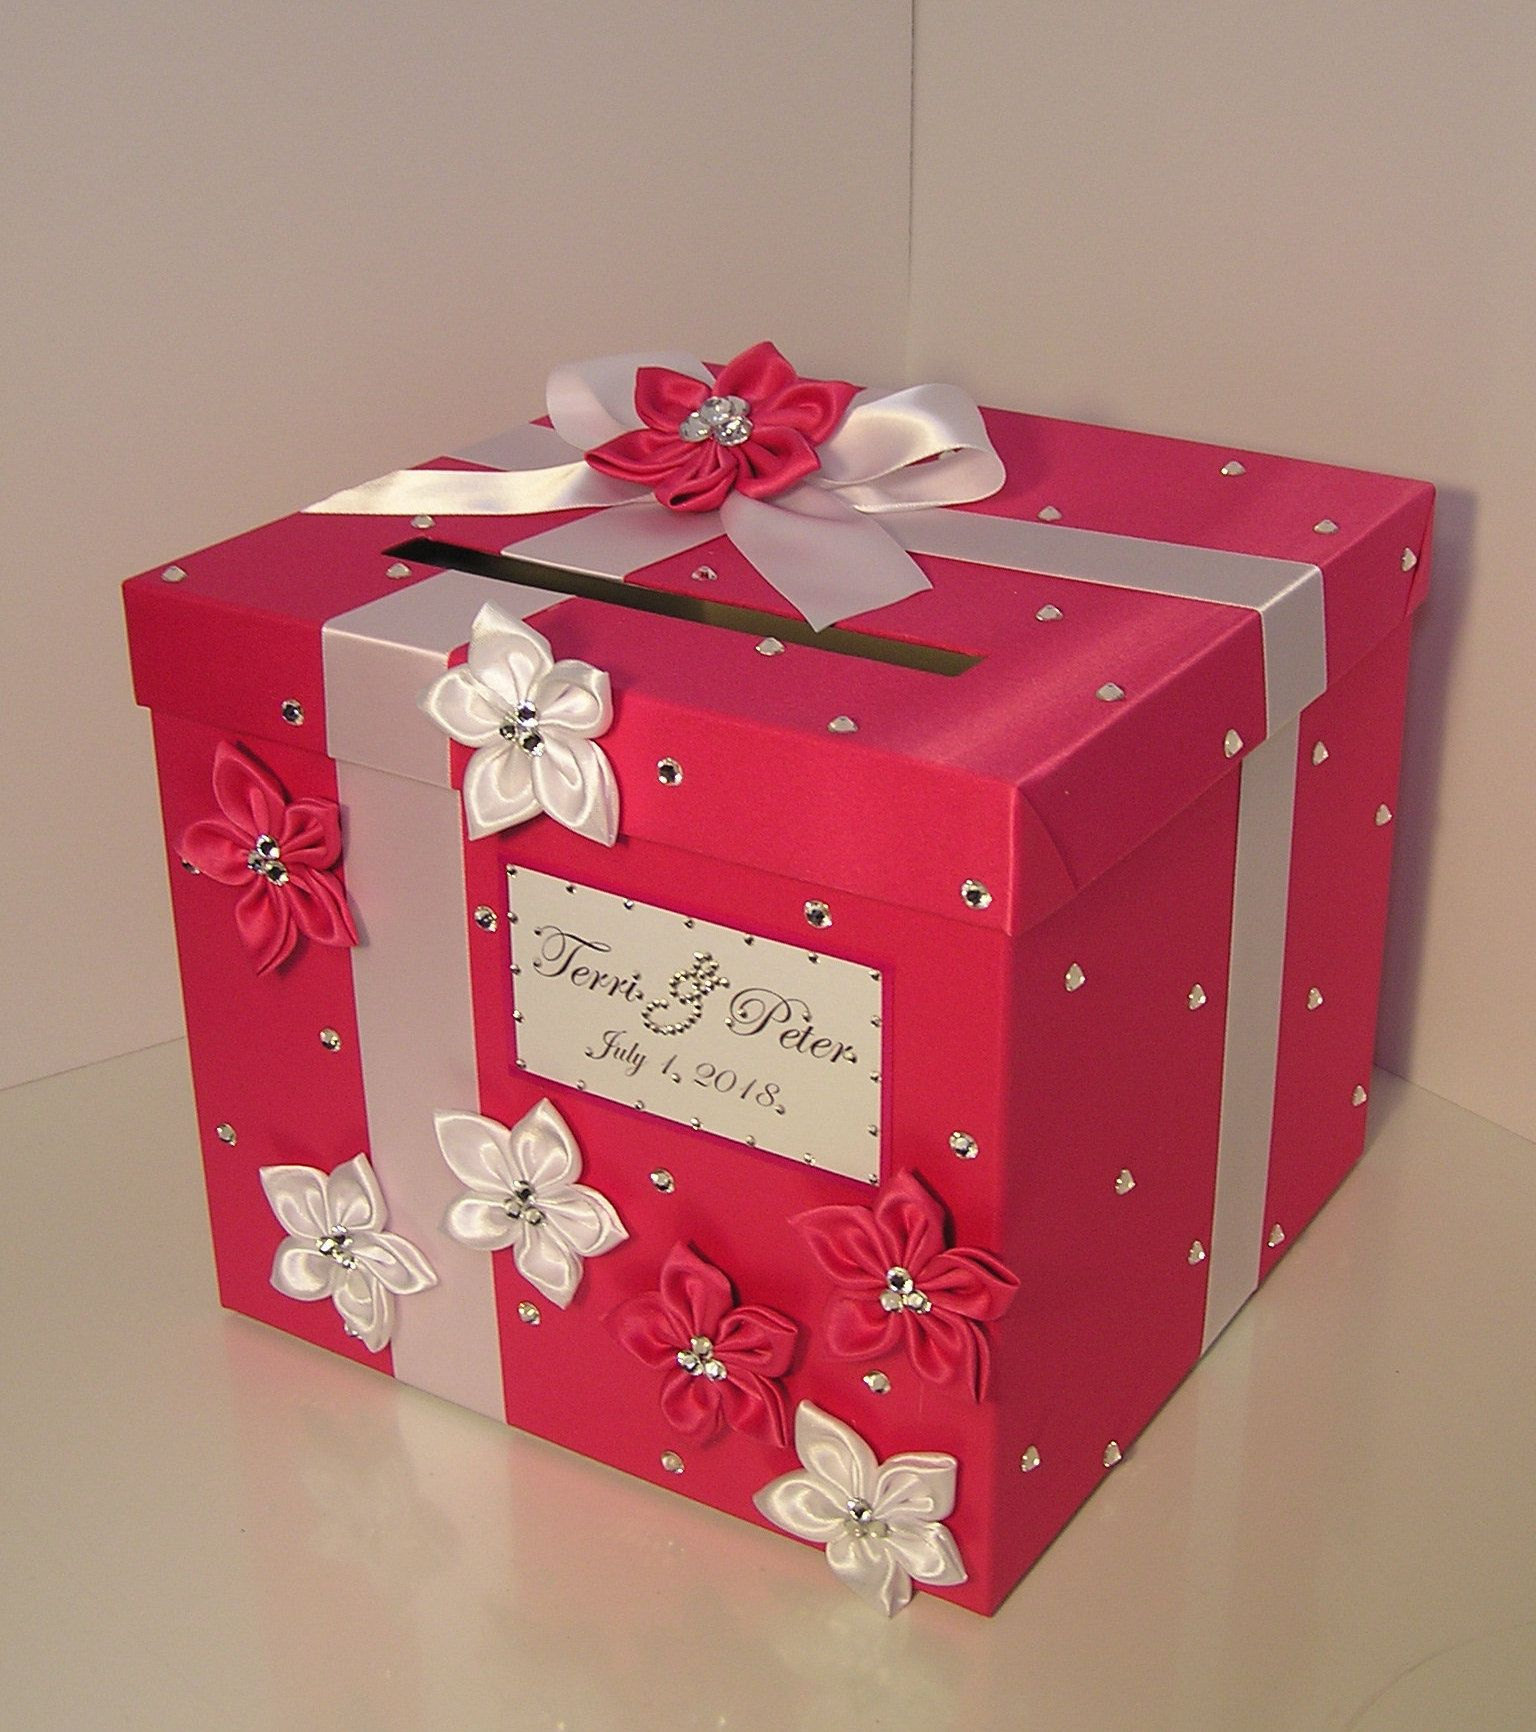 Pin By Bwithustudio On Hot Pink Card Box Gift Card Boxes Card Box Wedding Card Box